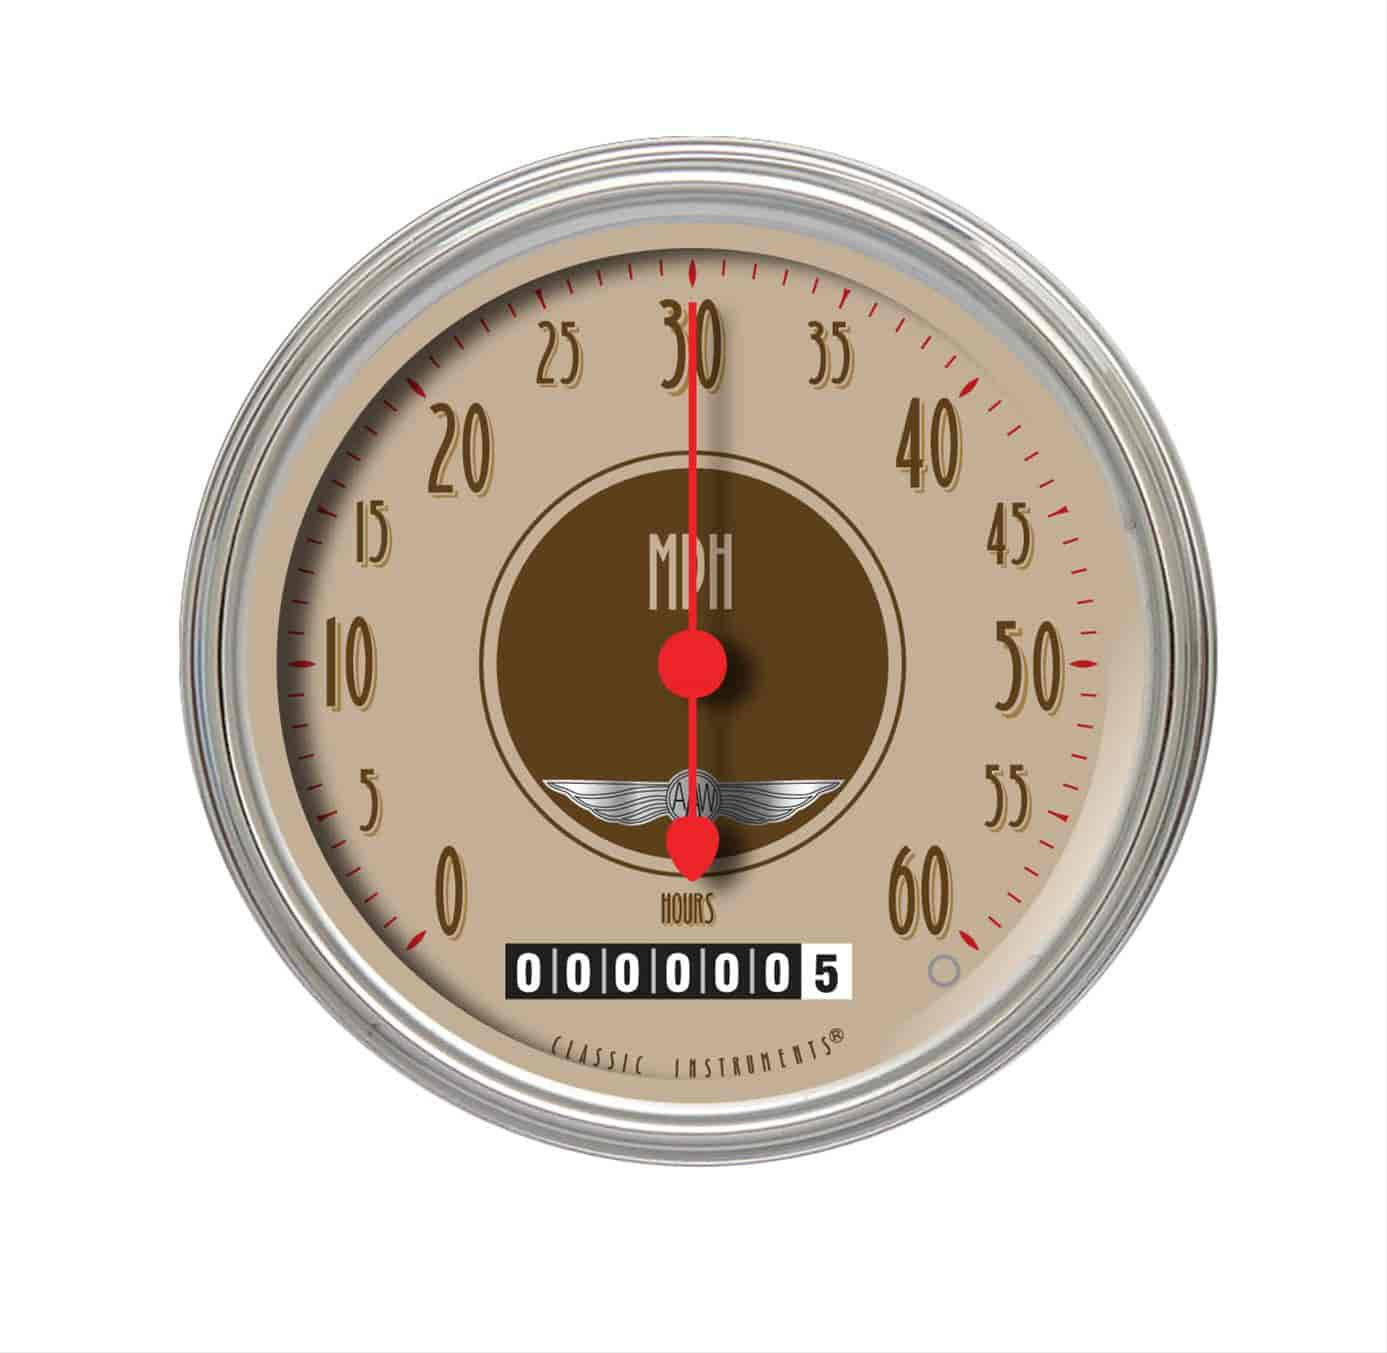 Vintage Hour Meter : Classic instruments lsvt low speed series speedometer